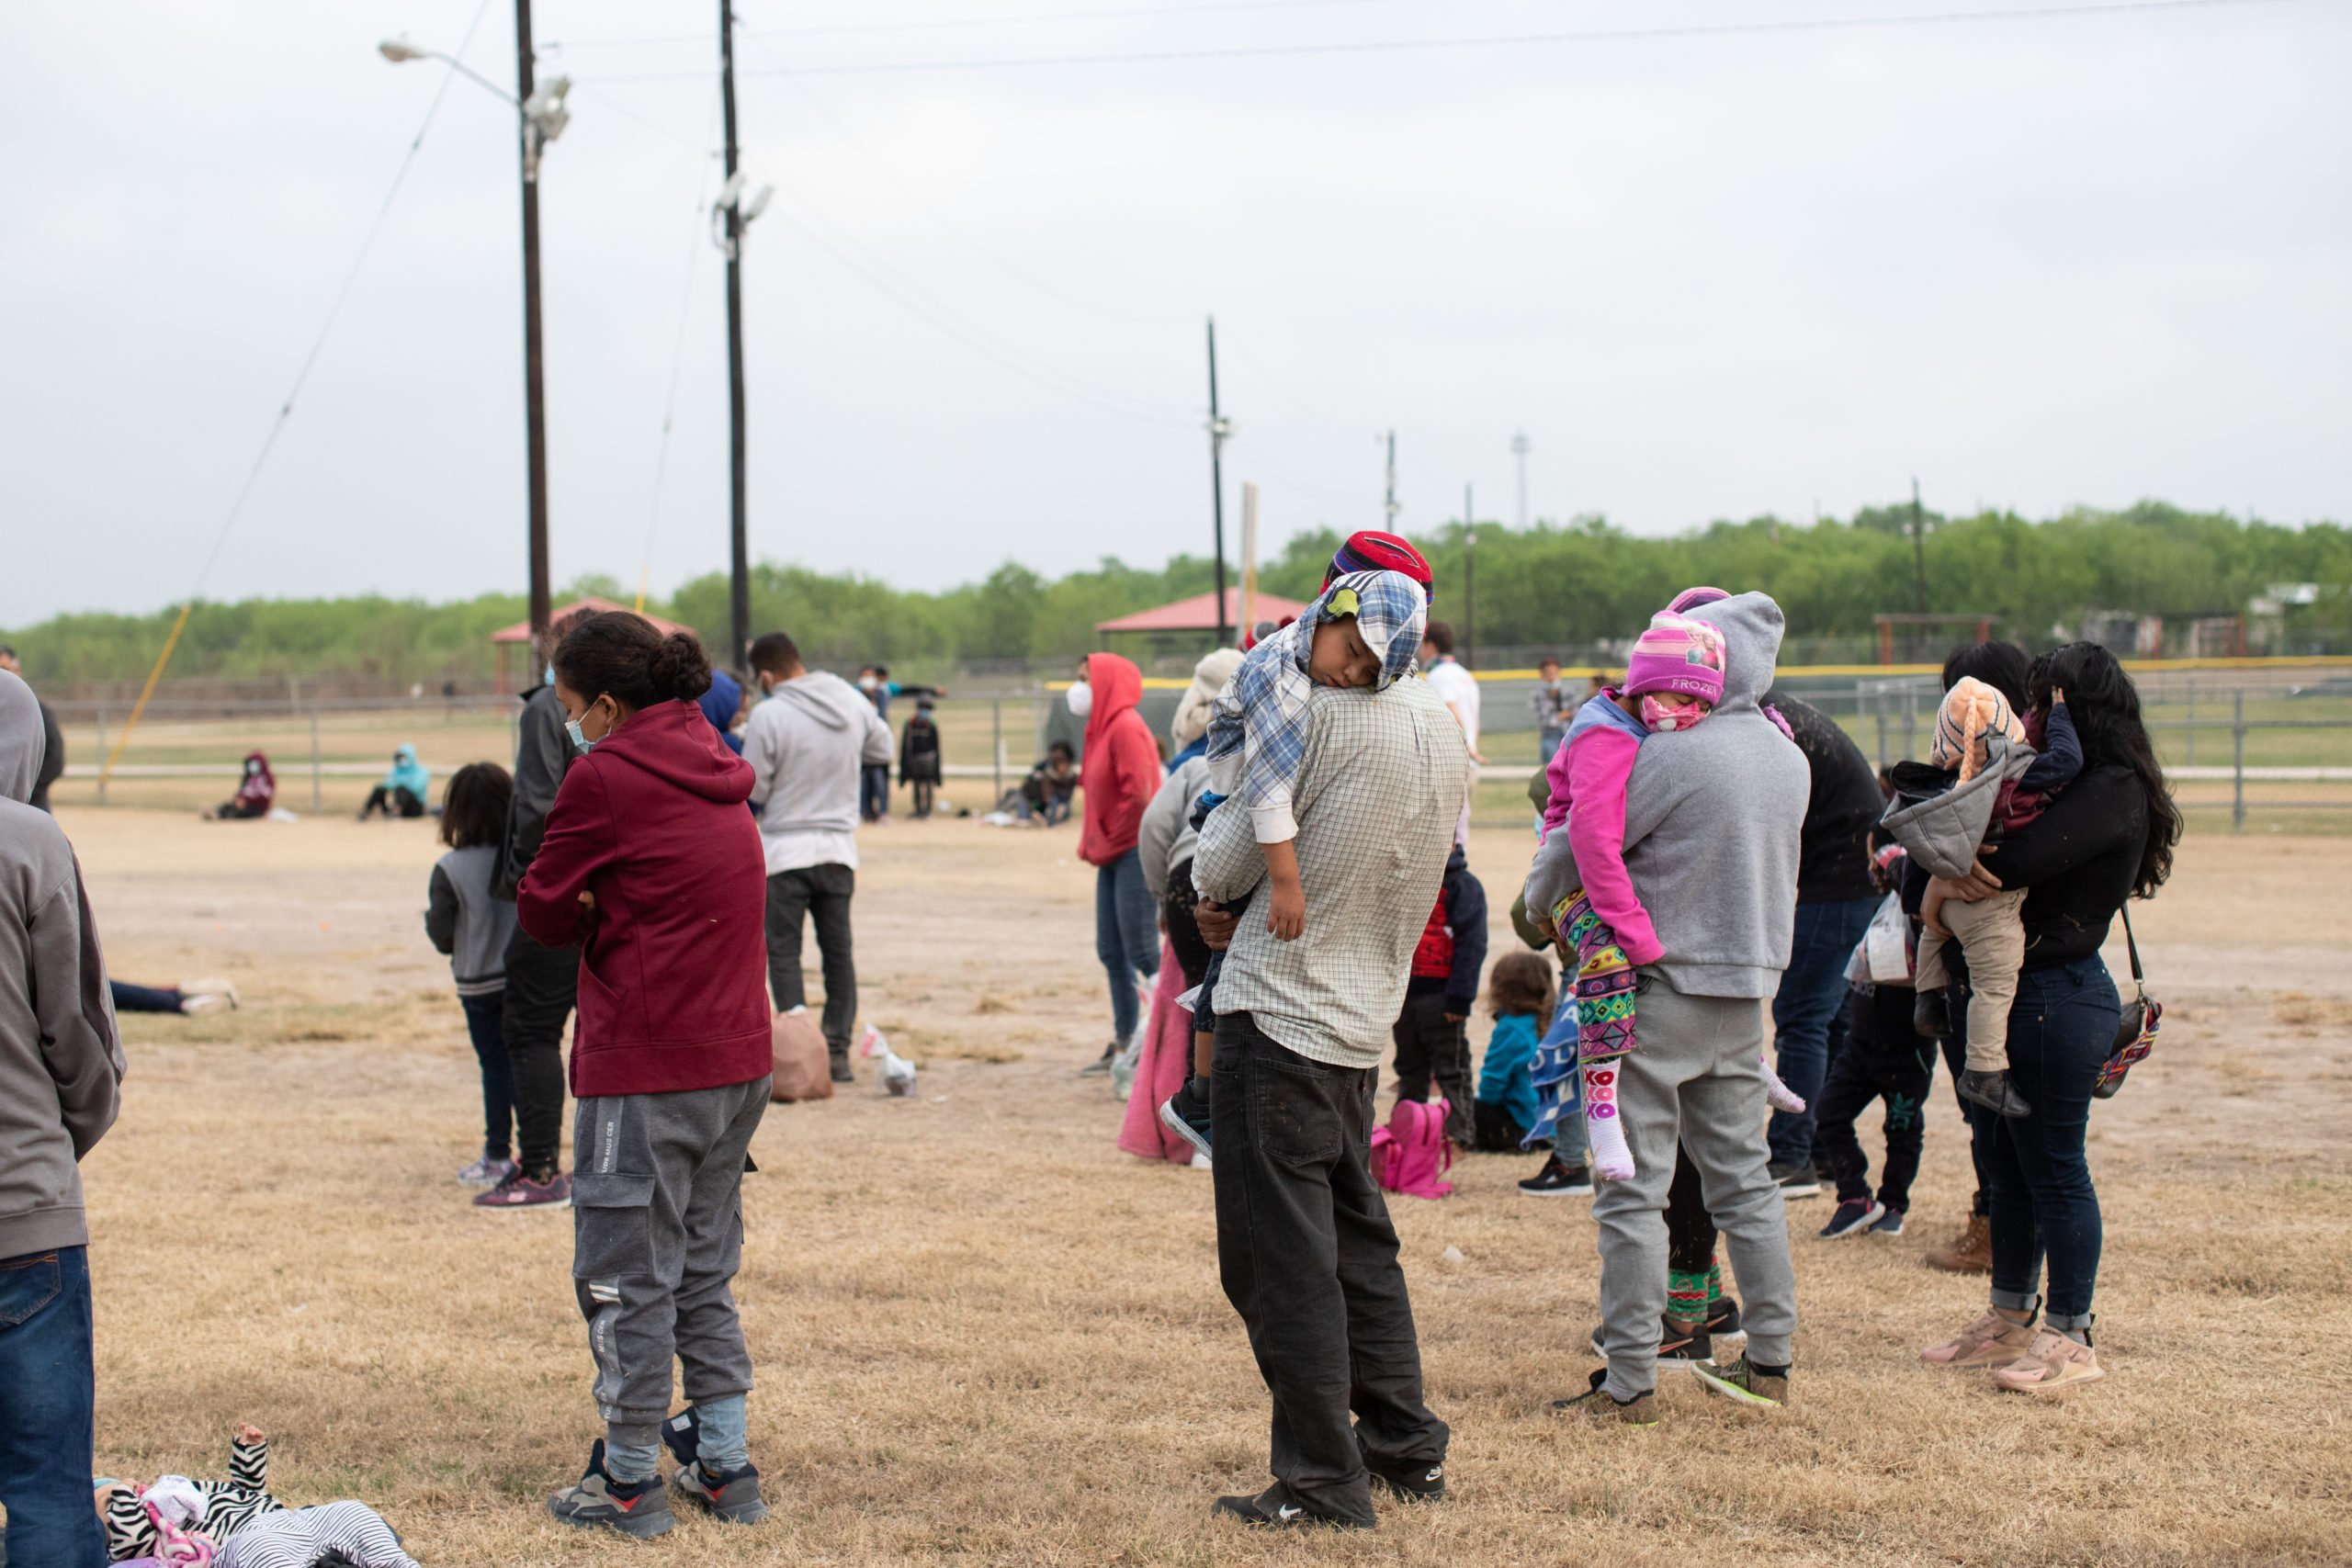 Several illegal migrants slept on the grass near the side of a public road as Customs and Border Protection officials worked to process the groups in La Joya, Texas on March 27, 2021. (Kaylee Greenlee - Daily Caller News Foundation)